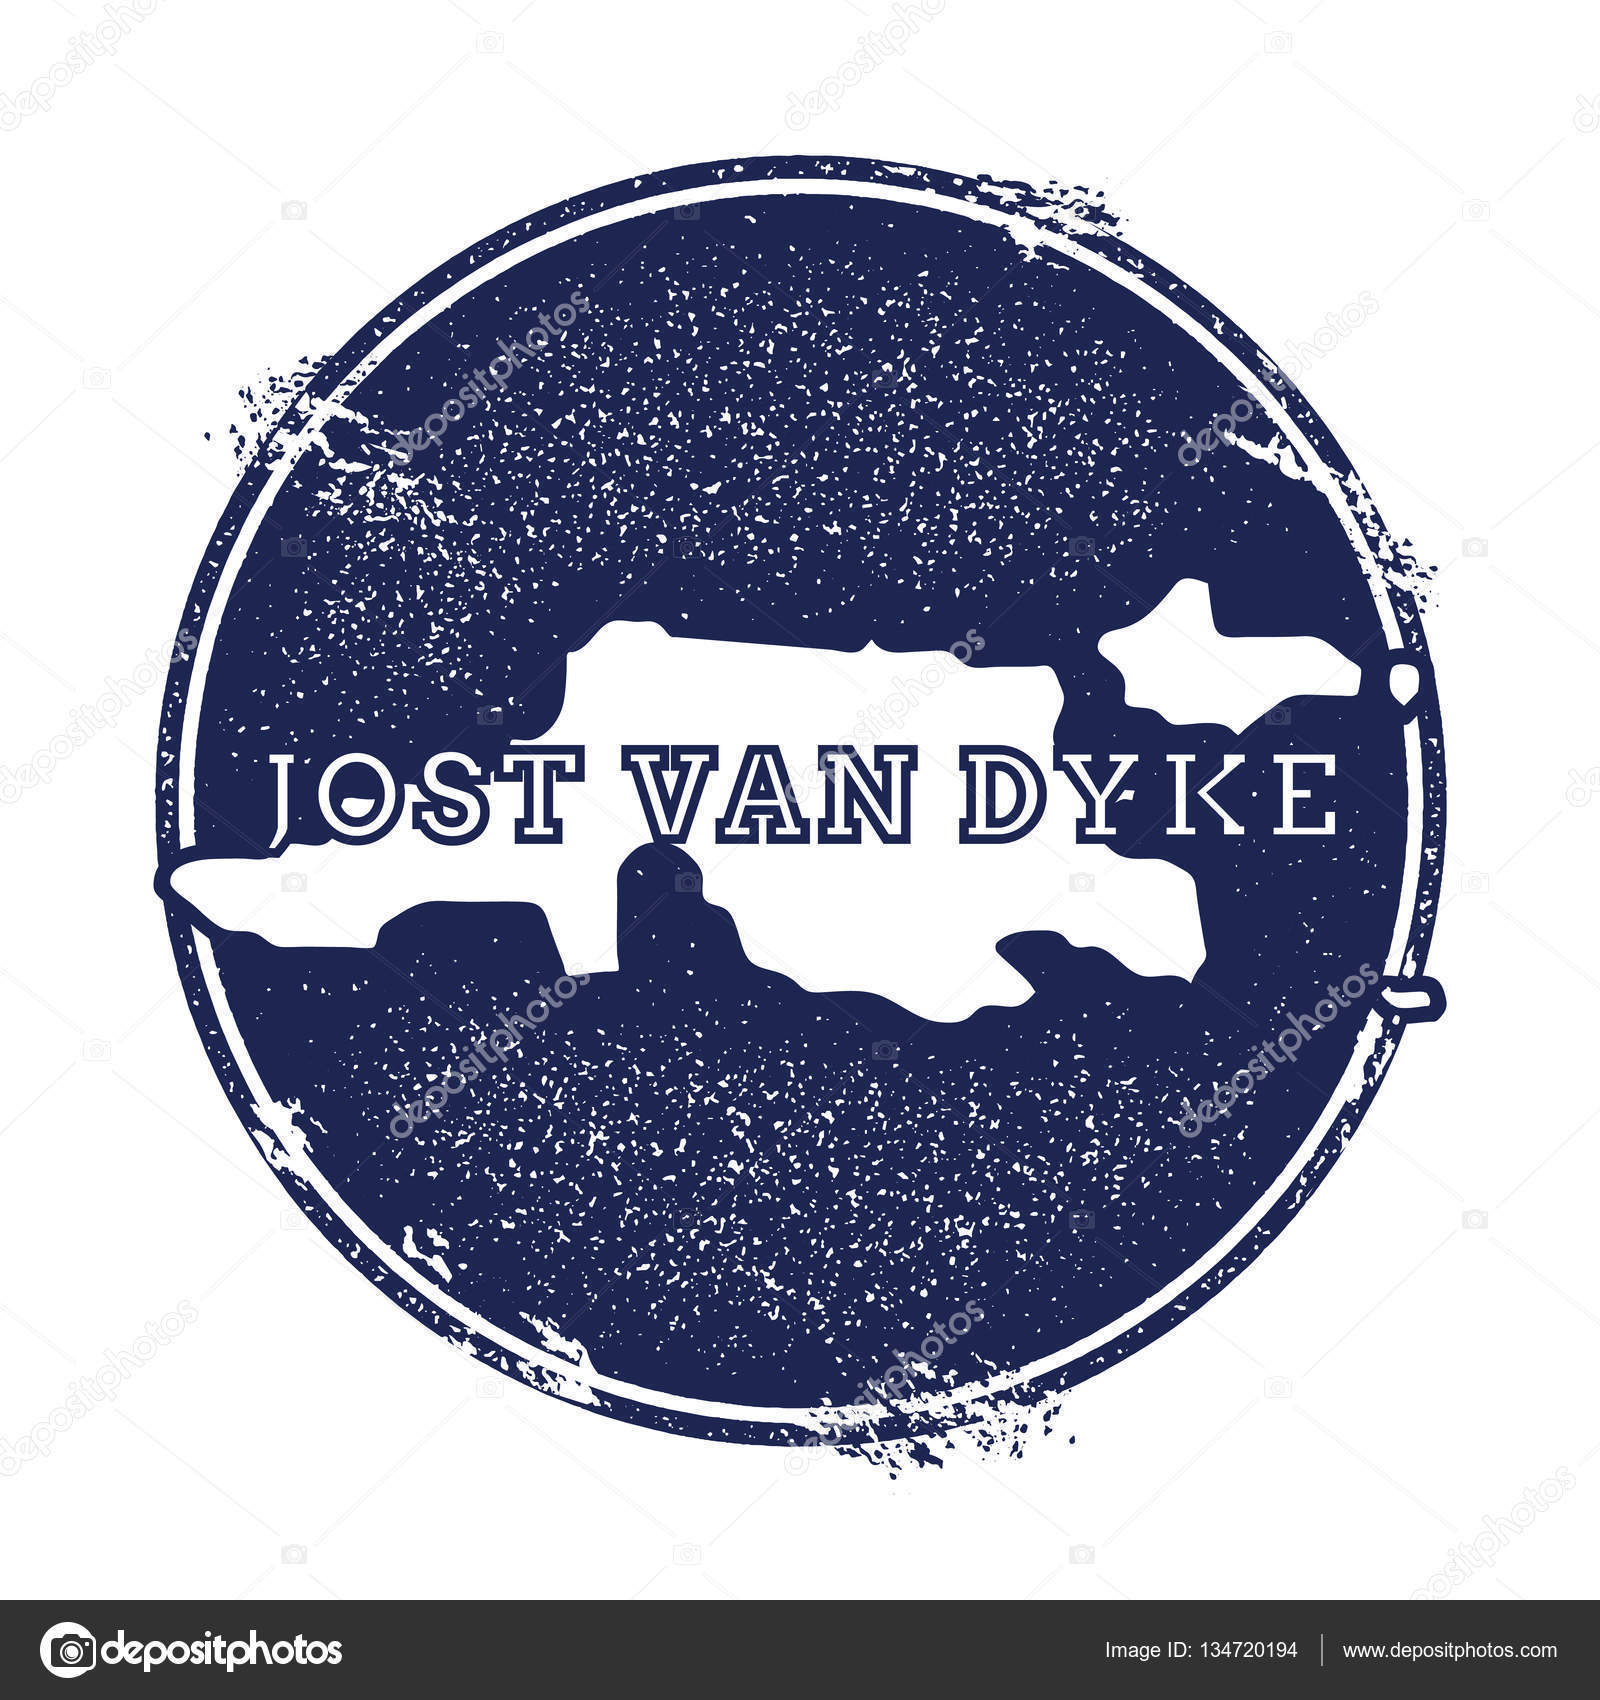 Jost Van Dyke vector map Grunge rubber stamp with the name and map